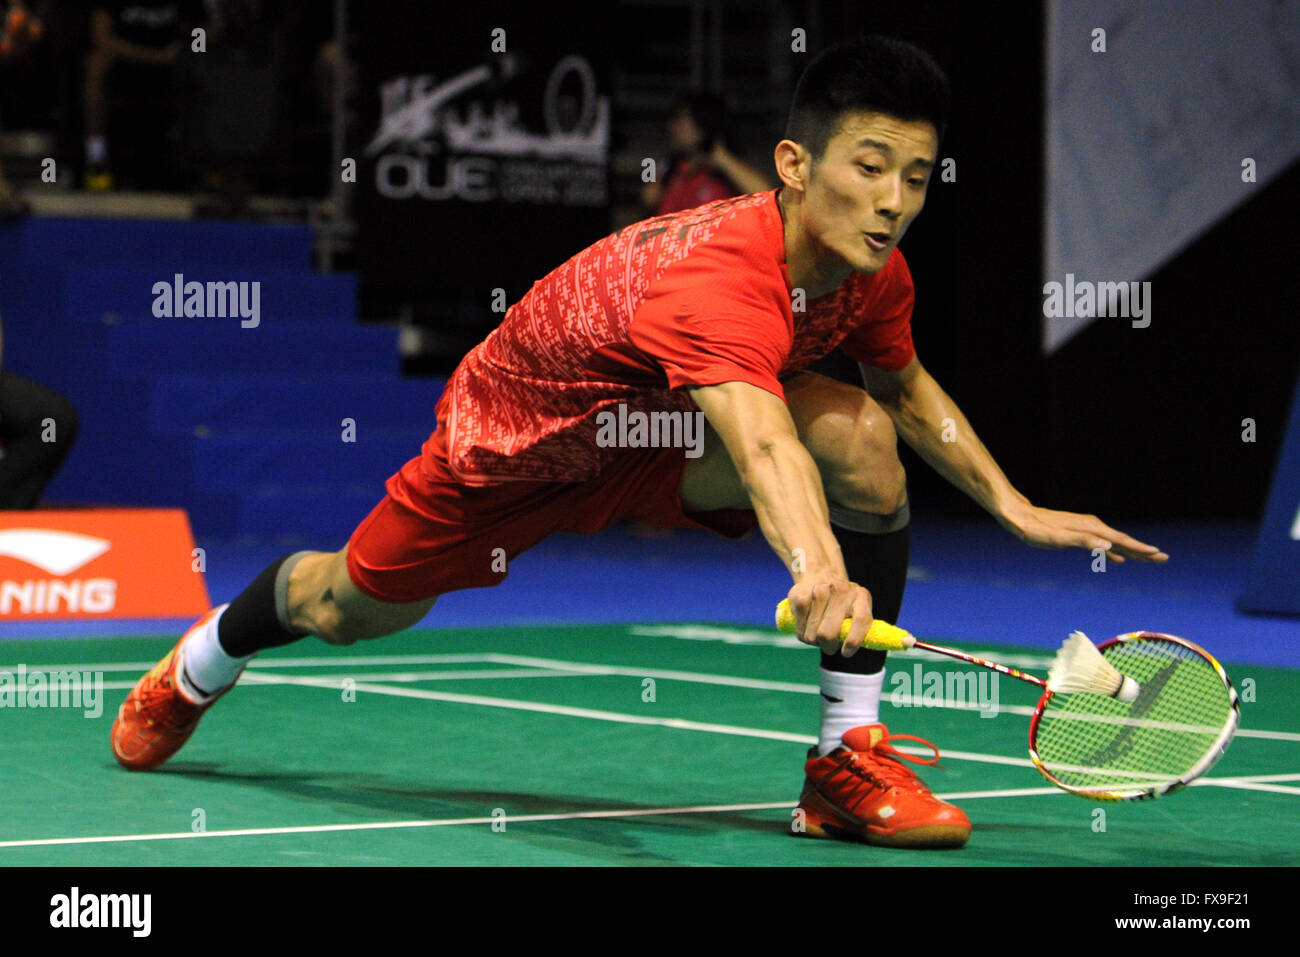 Singapore 13th Apr 2016 China s player Chen Long hits the